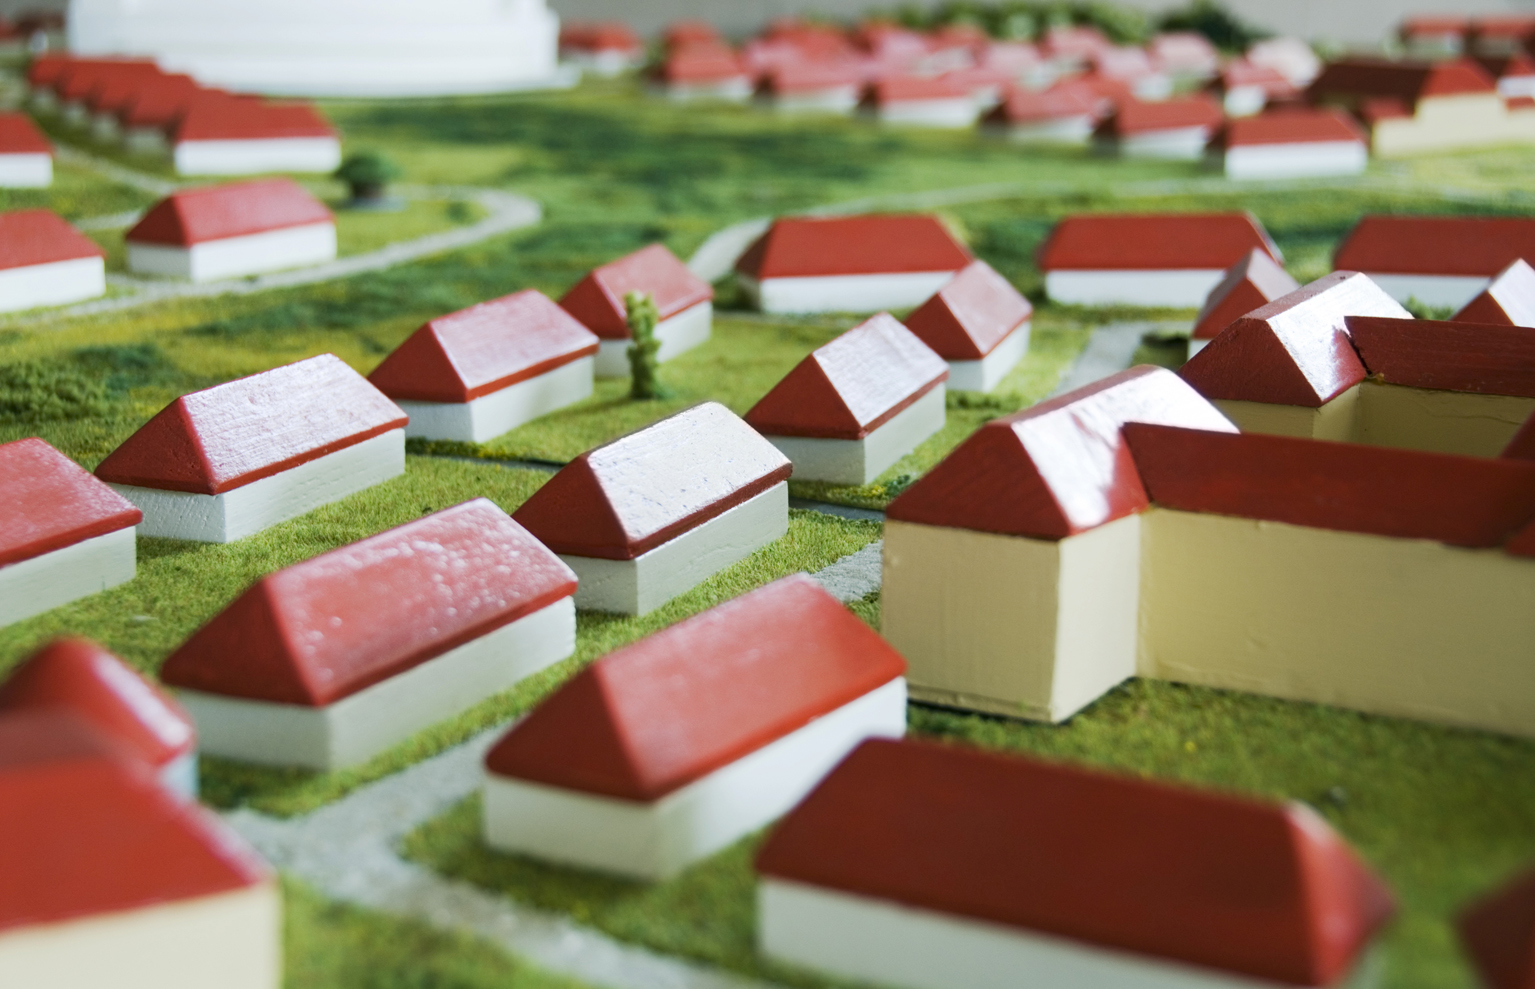 2355954-toy-model-village-red-and-white-houses-on-green